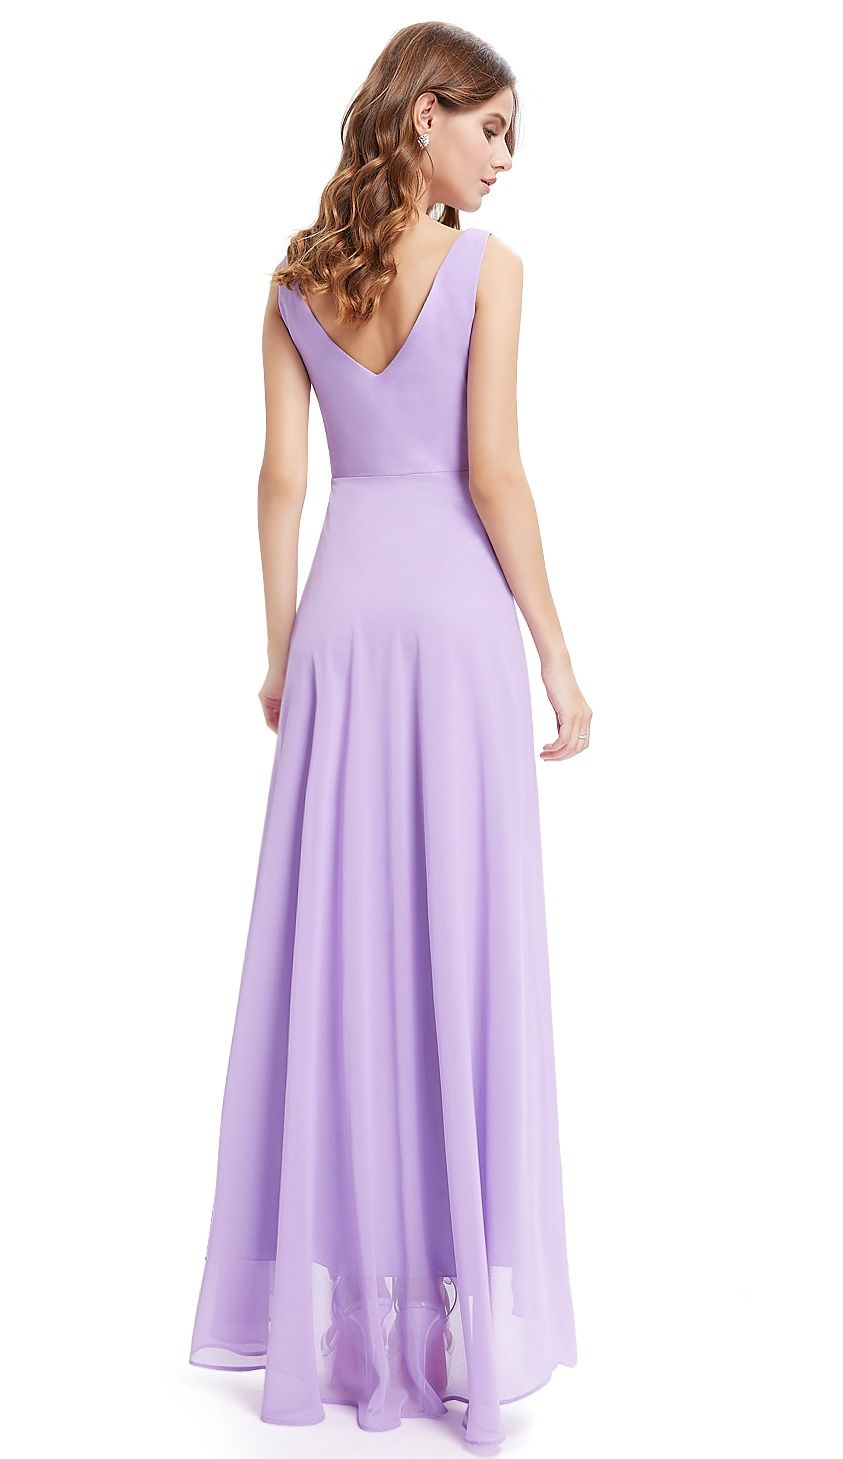 283d843ec902 Ever-Pretty Womens Sexy Deep V-Neck Long Maxi High-Low Formal Evening  Bridesmaid Party Prom Dance Dresses for Women 09983 Burgundy US 4#Maxi,  #Long, #Formal